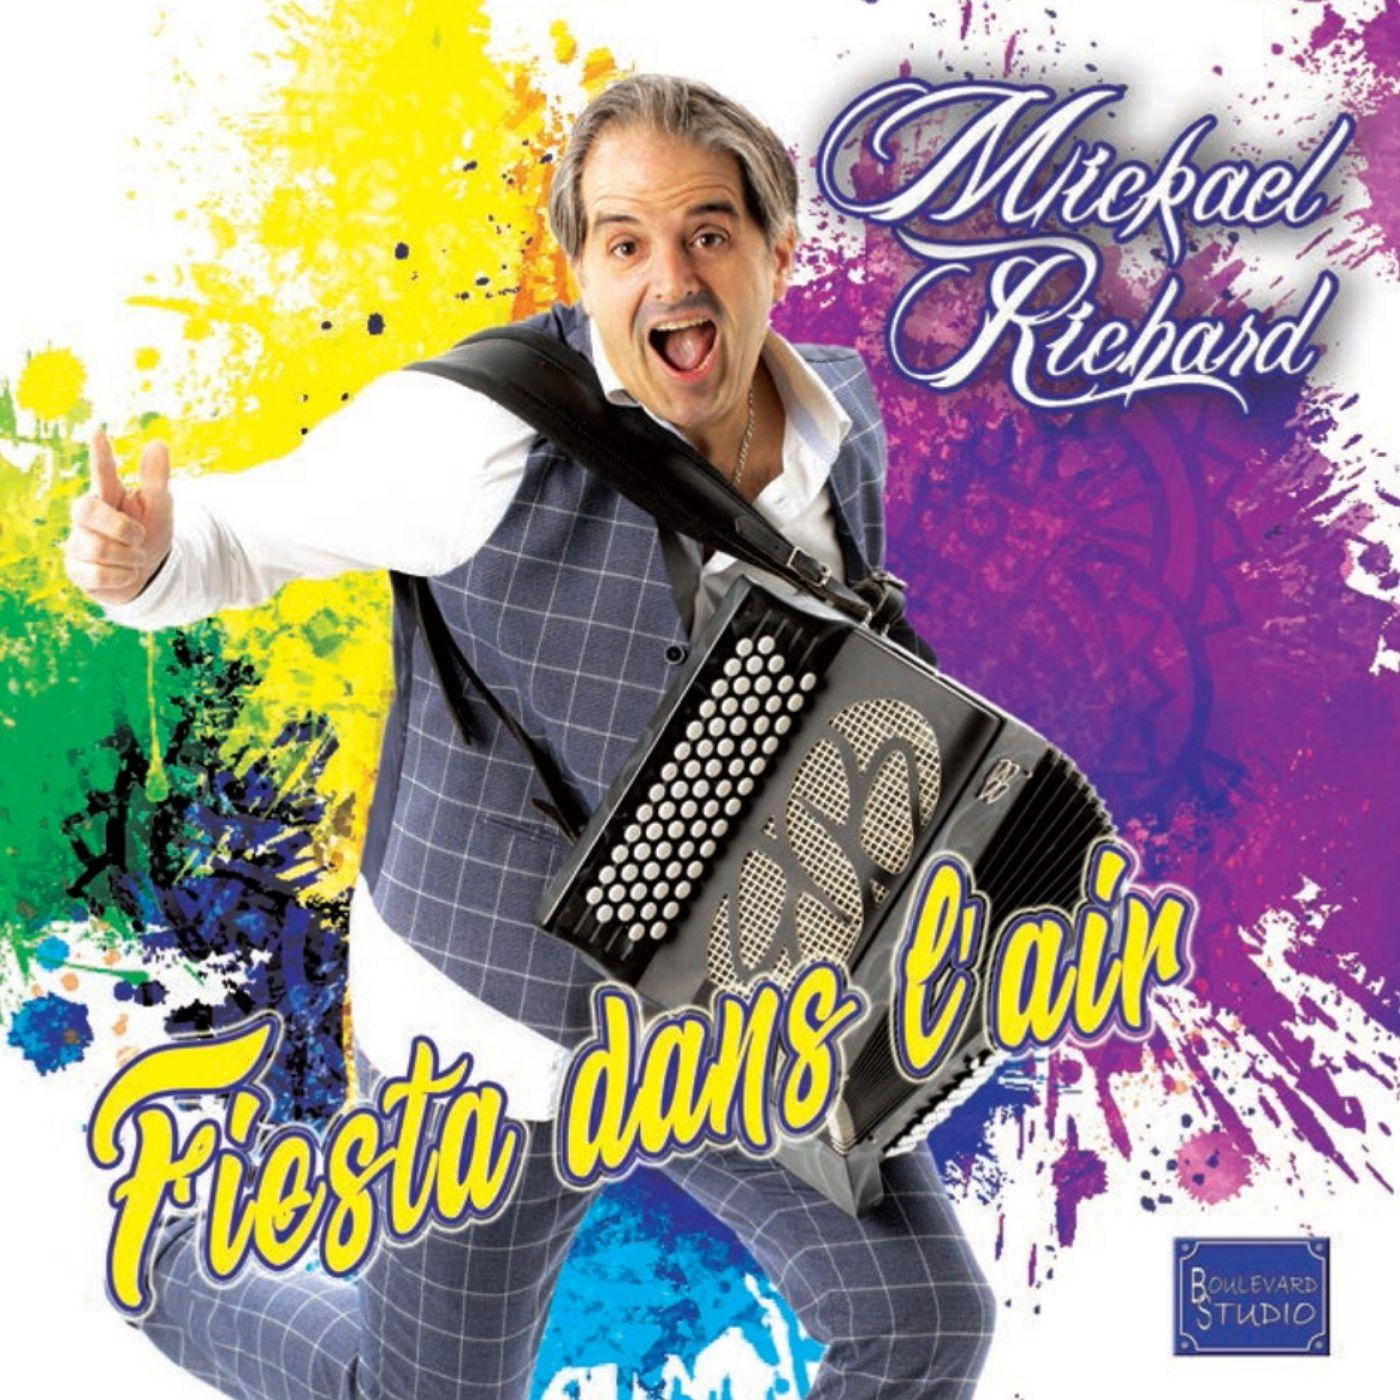 CD Mickaël RICHARD - Fiesta dans l'air